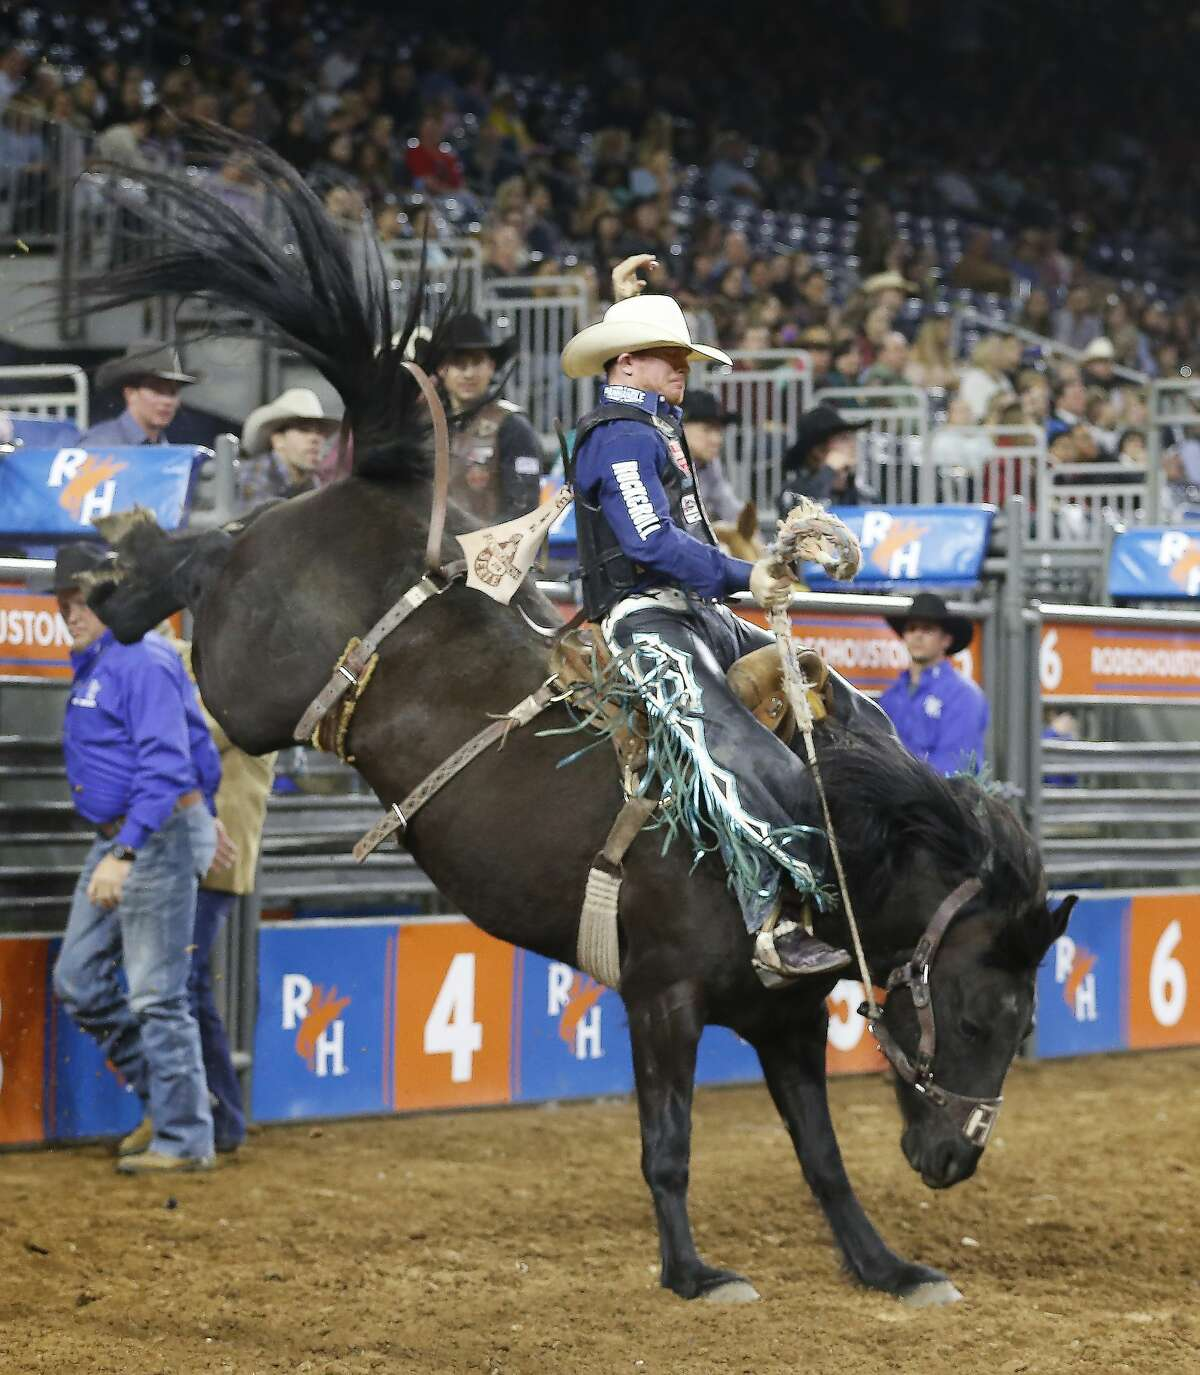 Jacobs Crawley rides Mtn Climber during Super Series III Round 3 Saddle Bronc Riding action of Rodeo Houston Wednesday, March 7, 2018, in Houston. ( Steve Gonzales / Houston Chronicle )